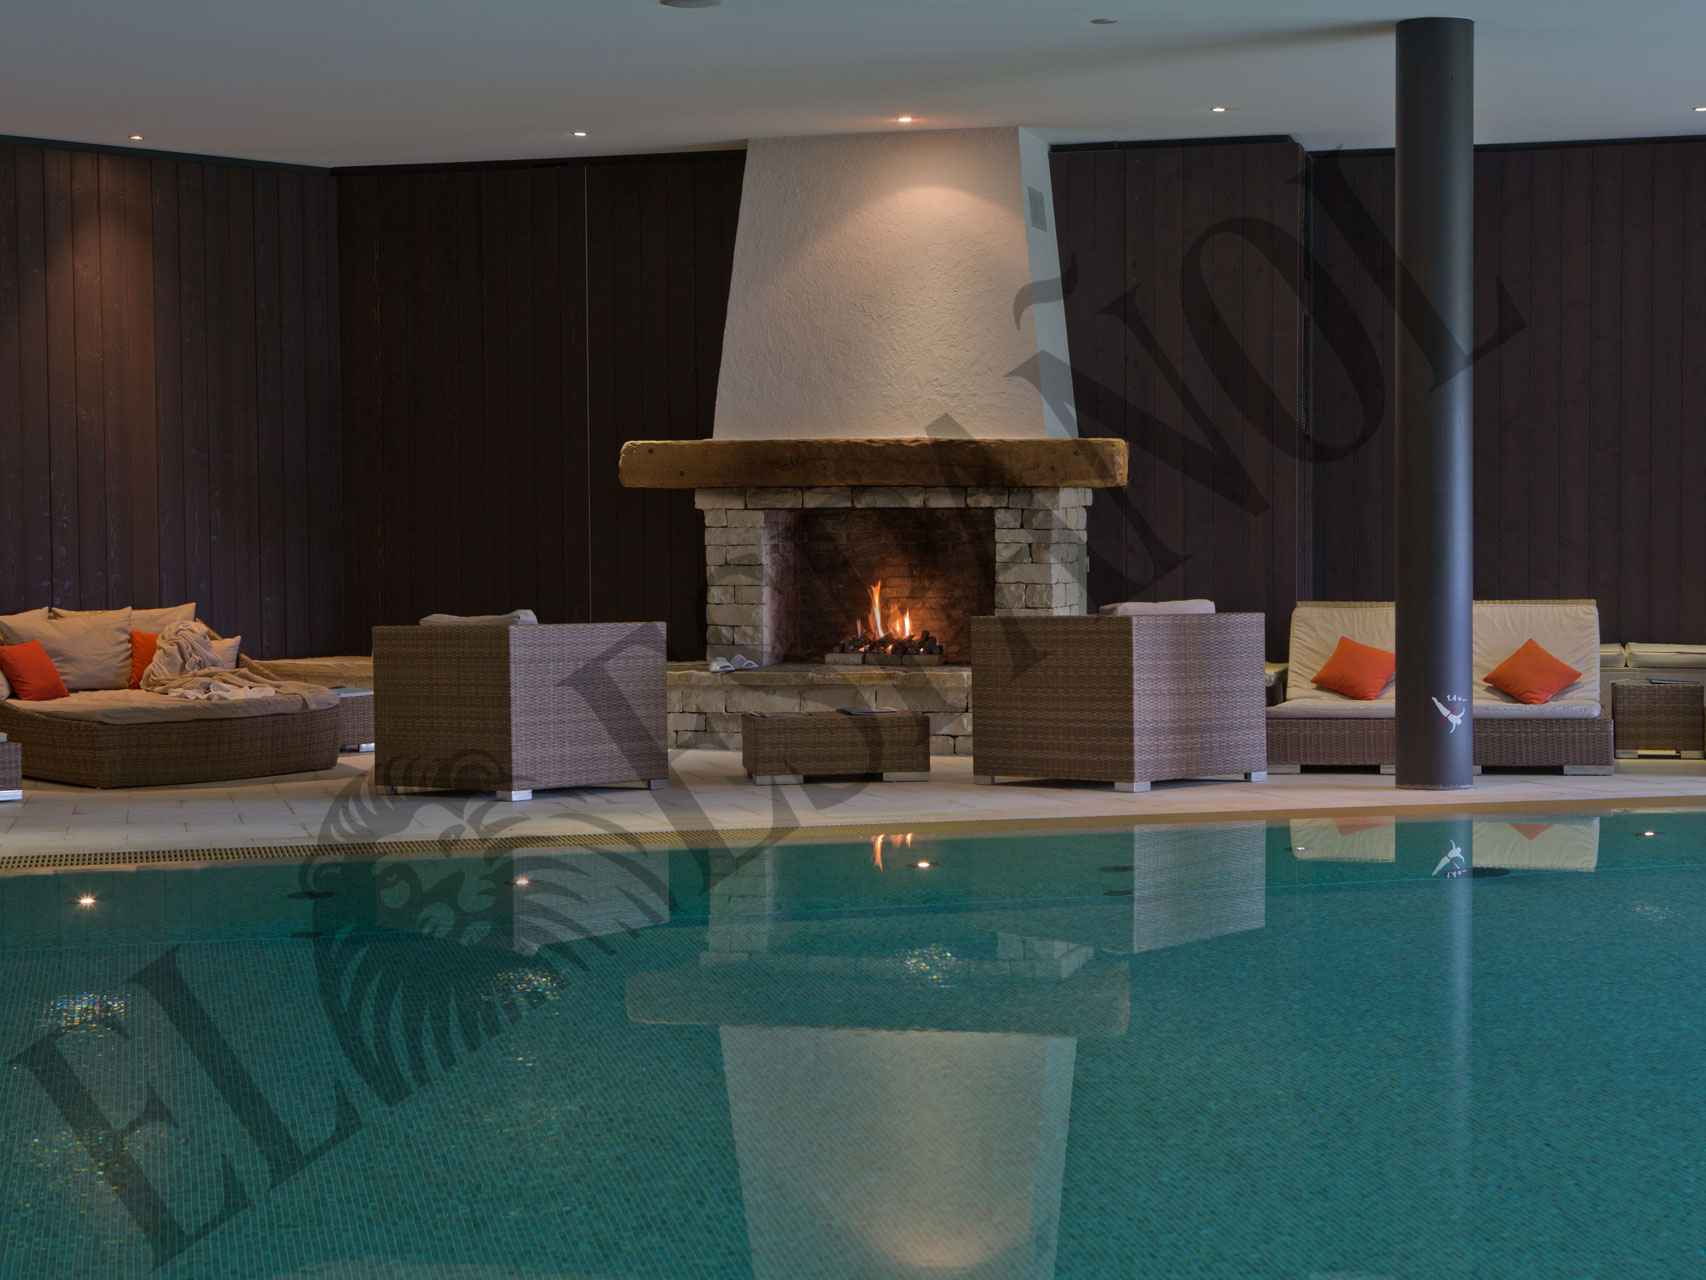 El spa de RoyalAlp